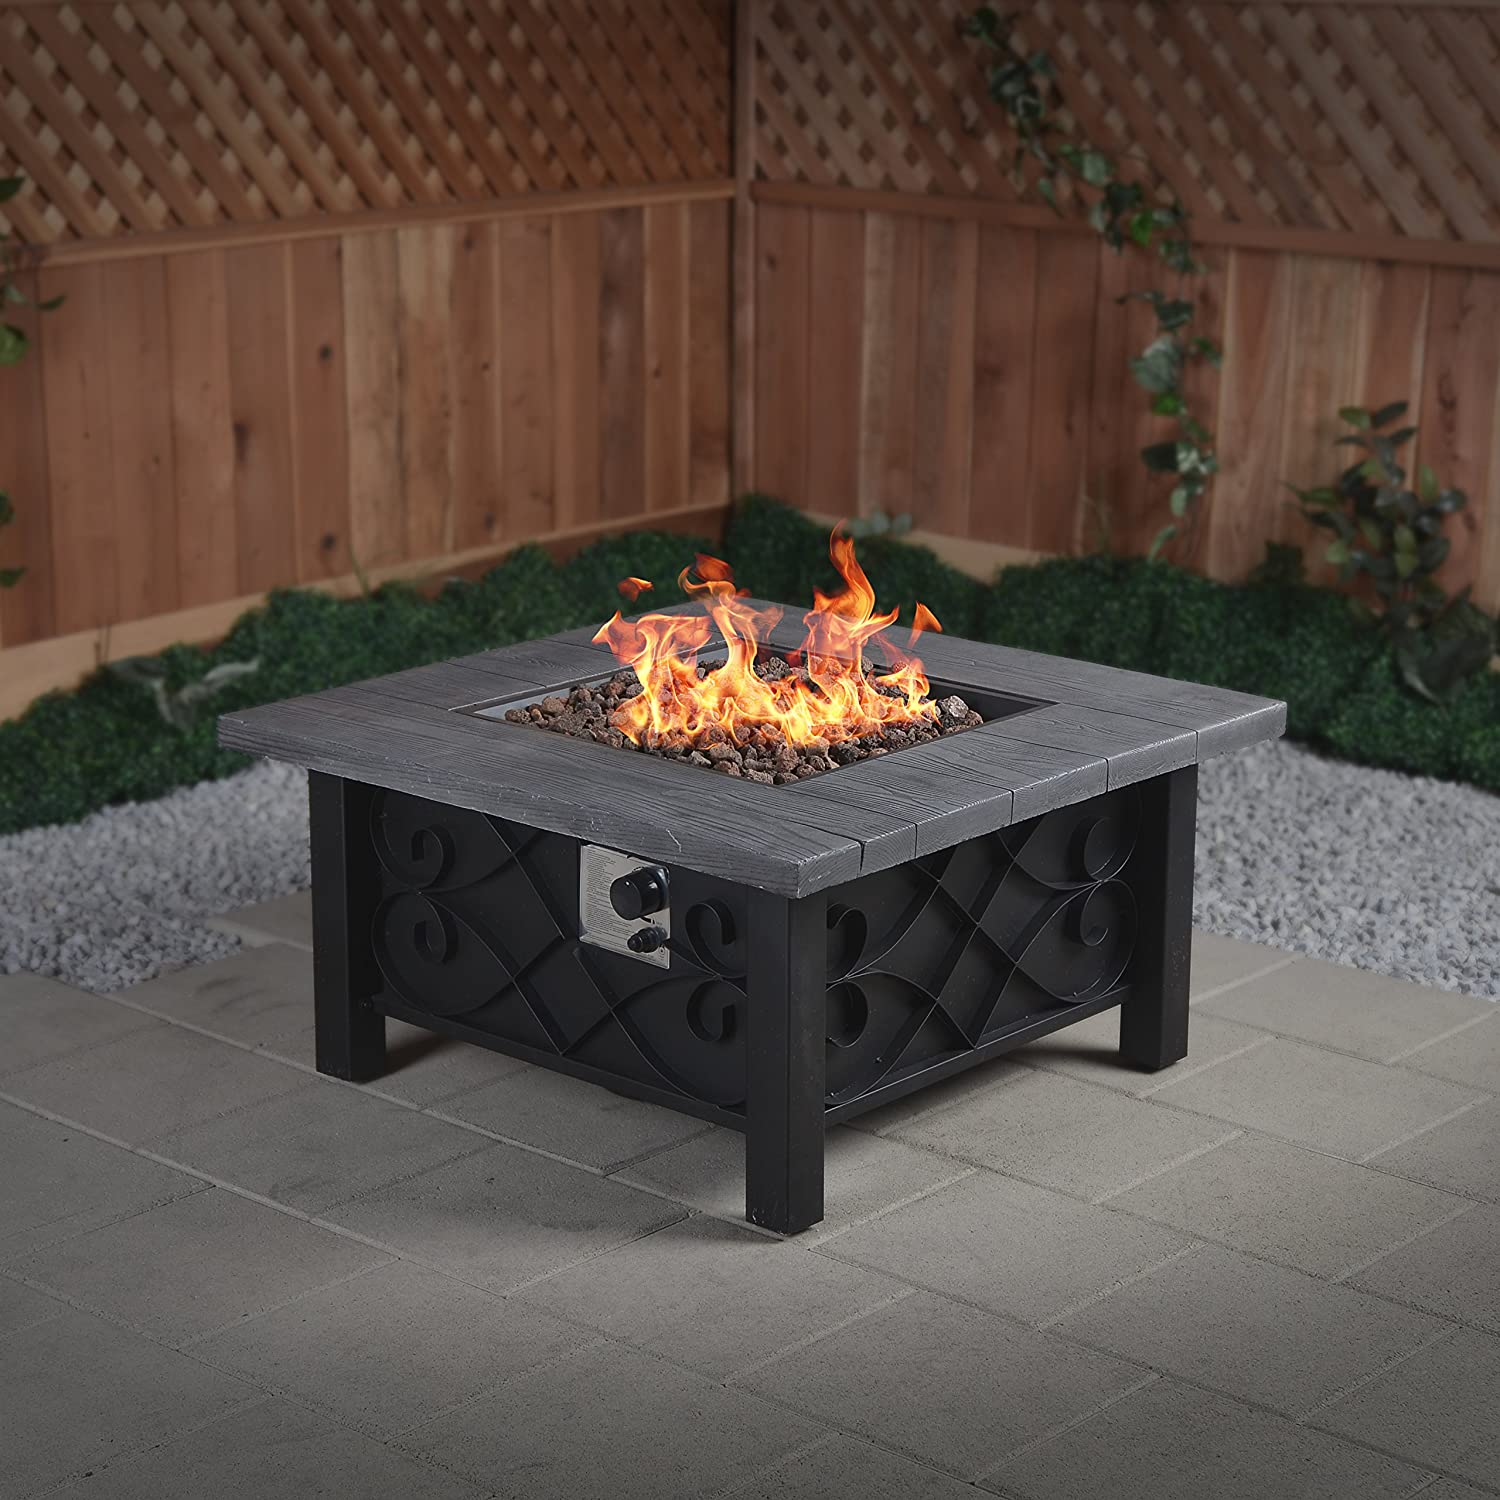 Amazon Marbella Steel Gas Fire Table 34 5 Inches by 34 5